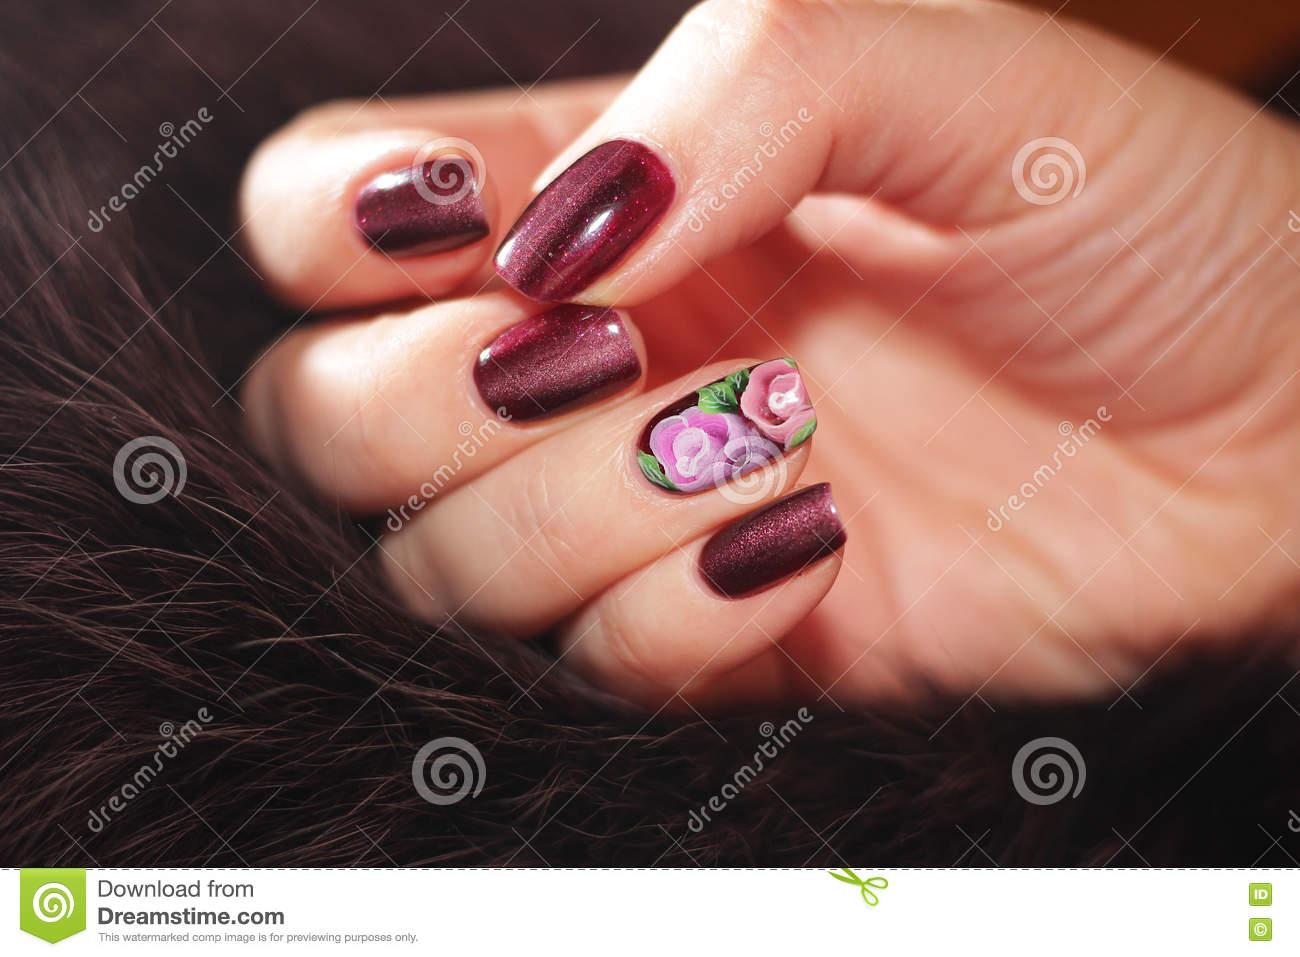 Beautiful nail designs. stock image. Image of flowers - 81607987